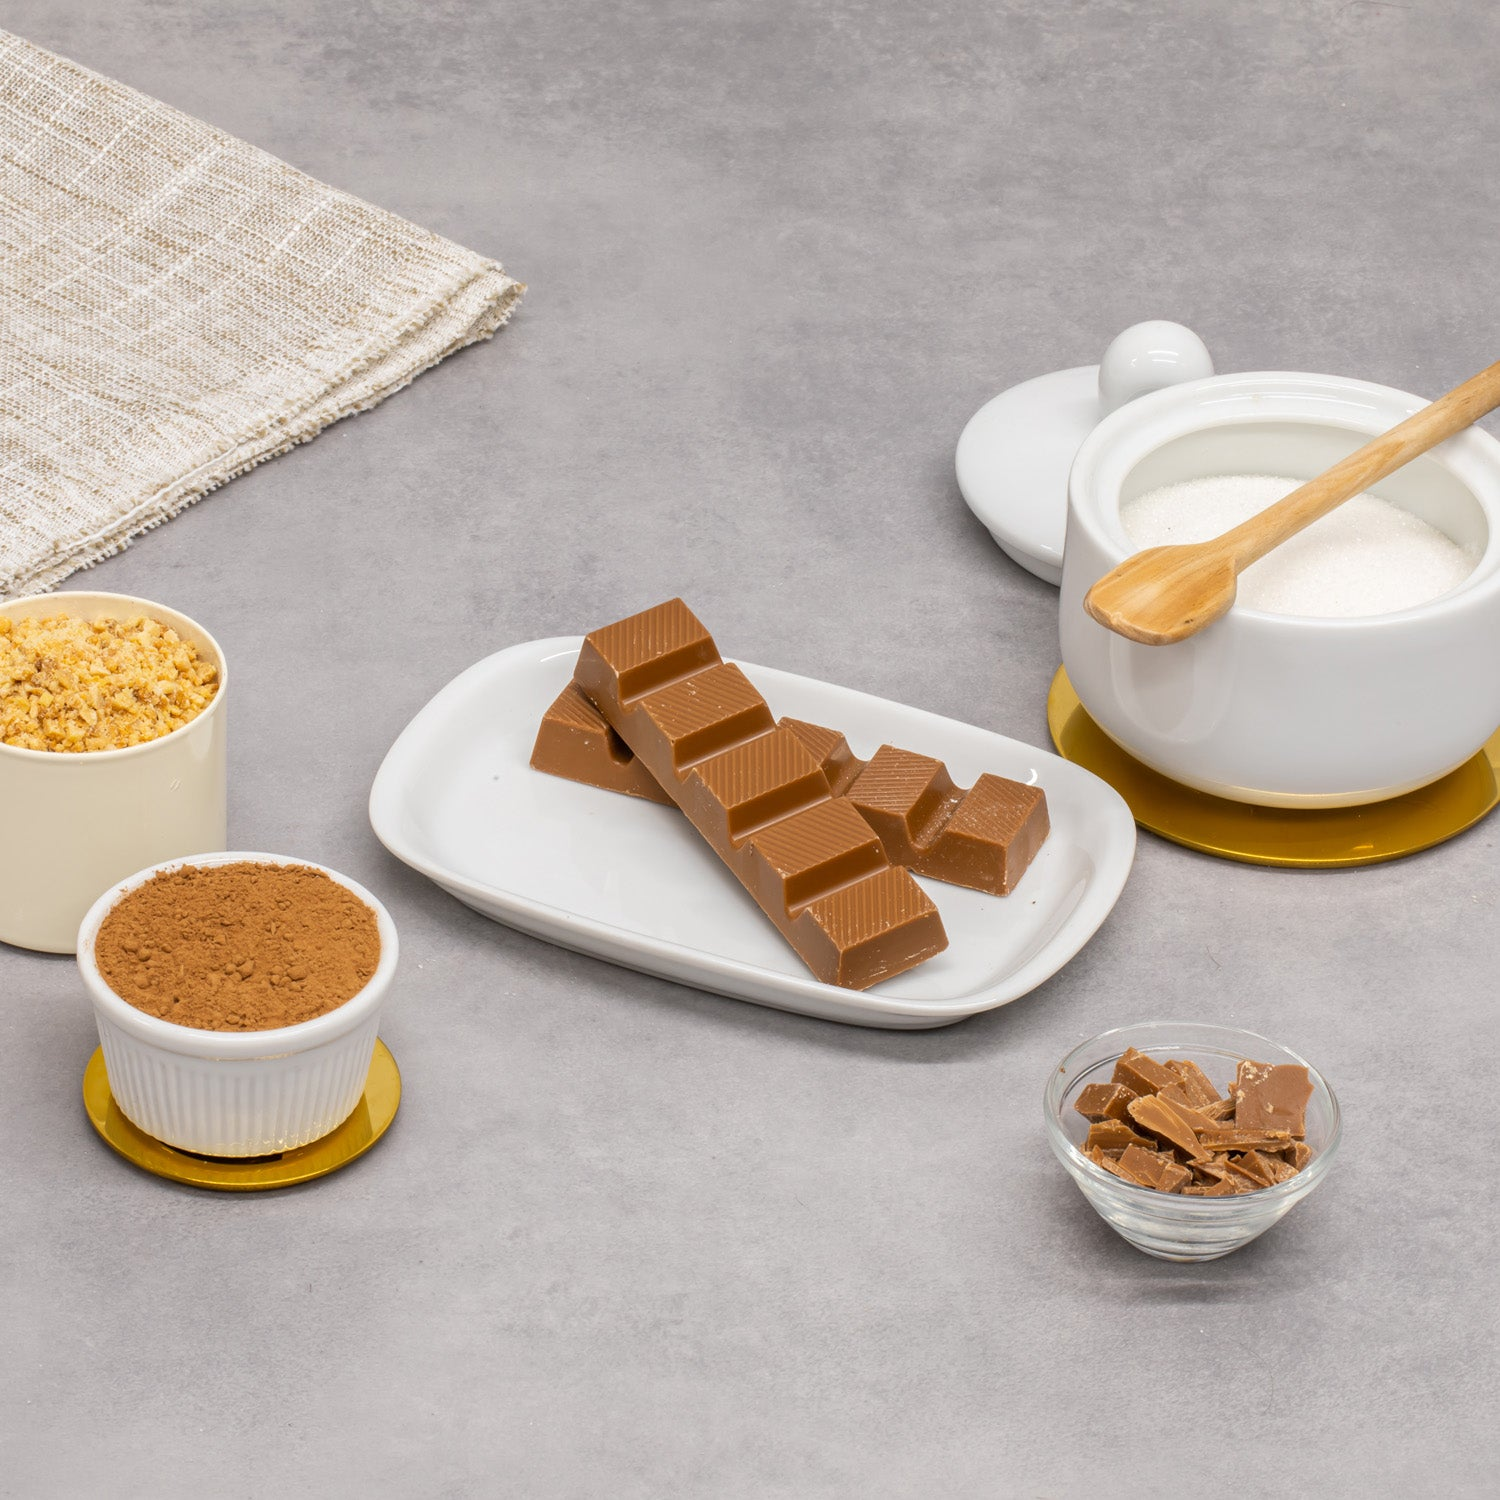 Tablete de Chocolate de Leite com Biscoito